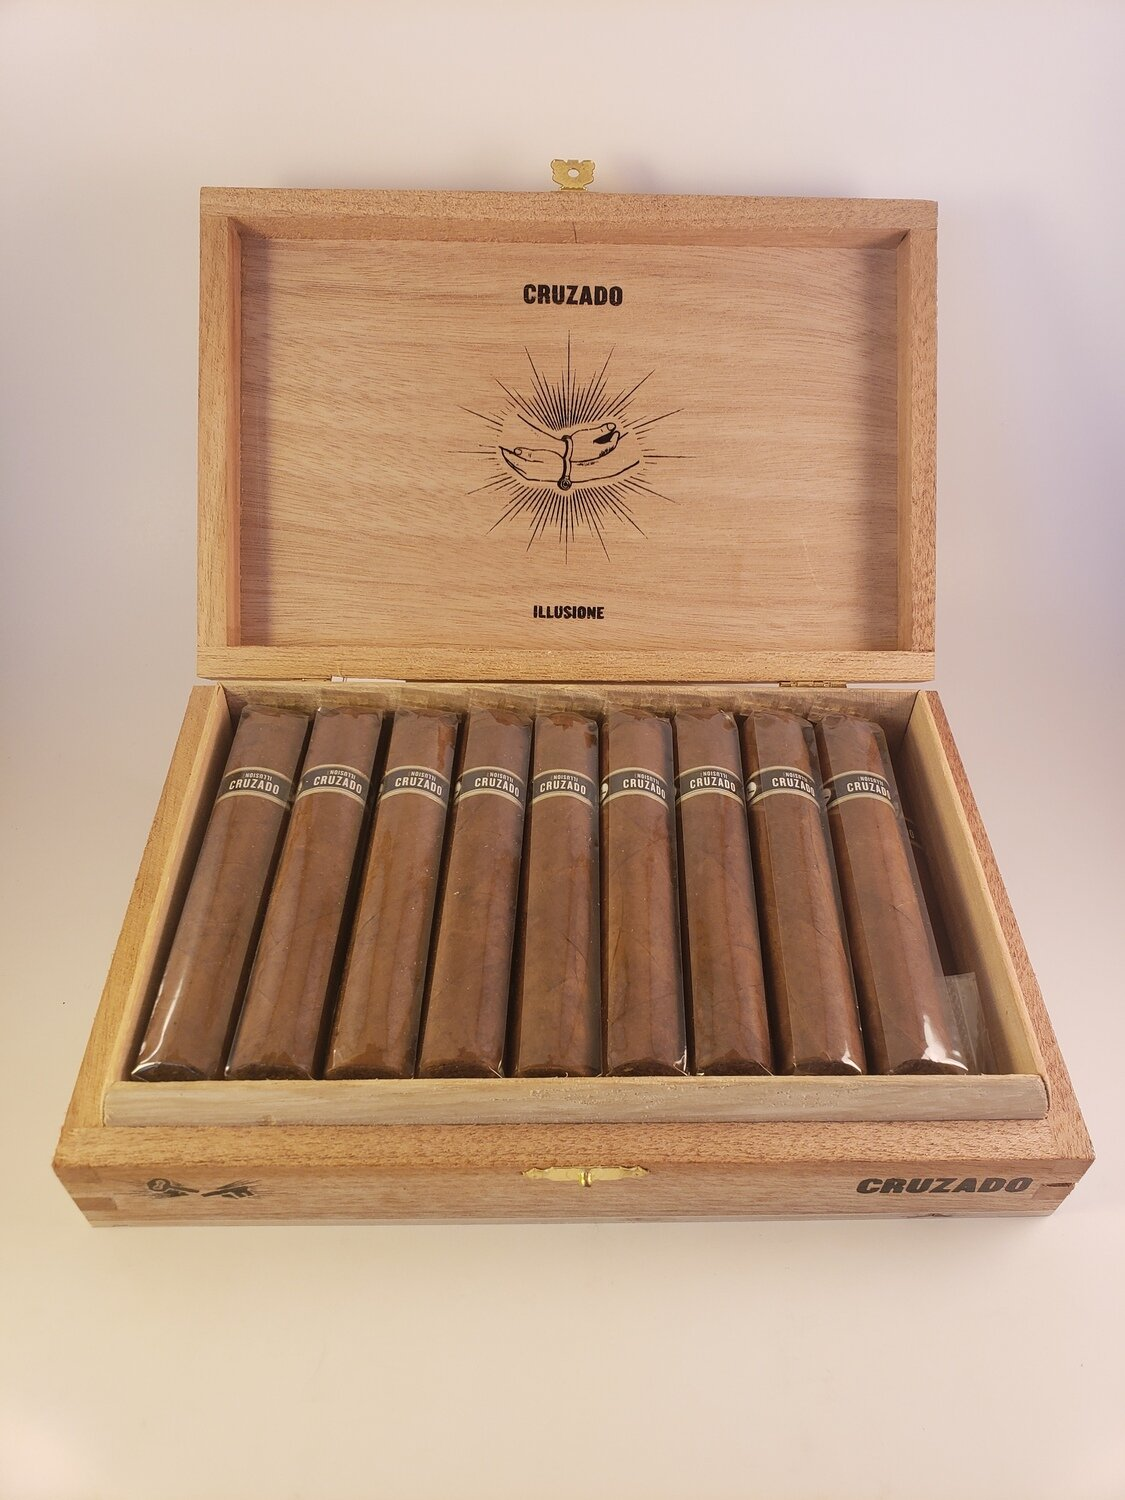 Illusione Cruzado Gordo 6 x 56 Single Cigar